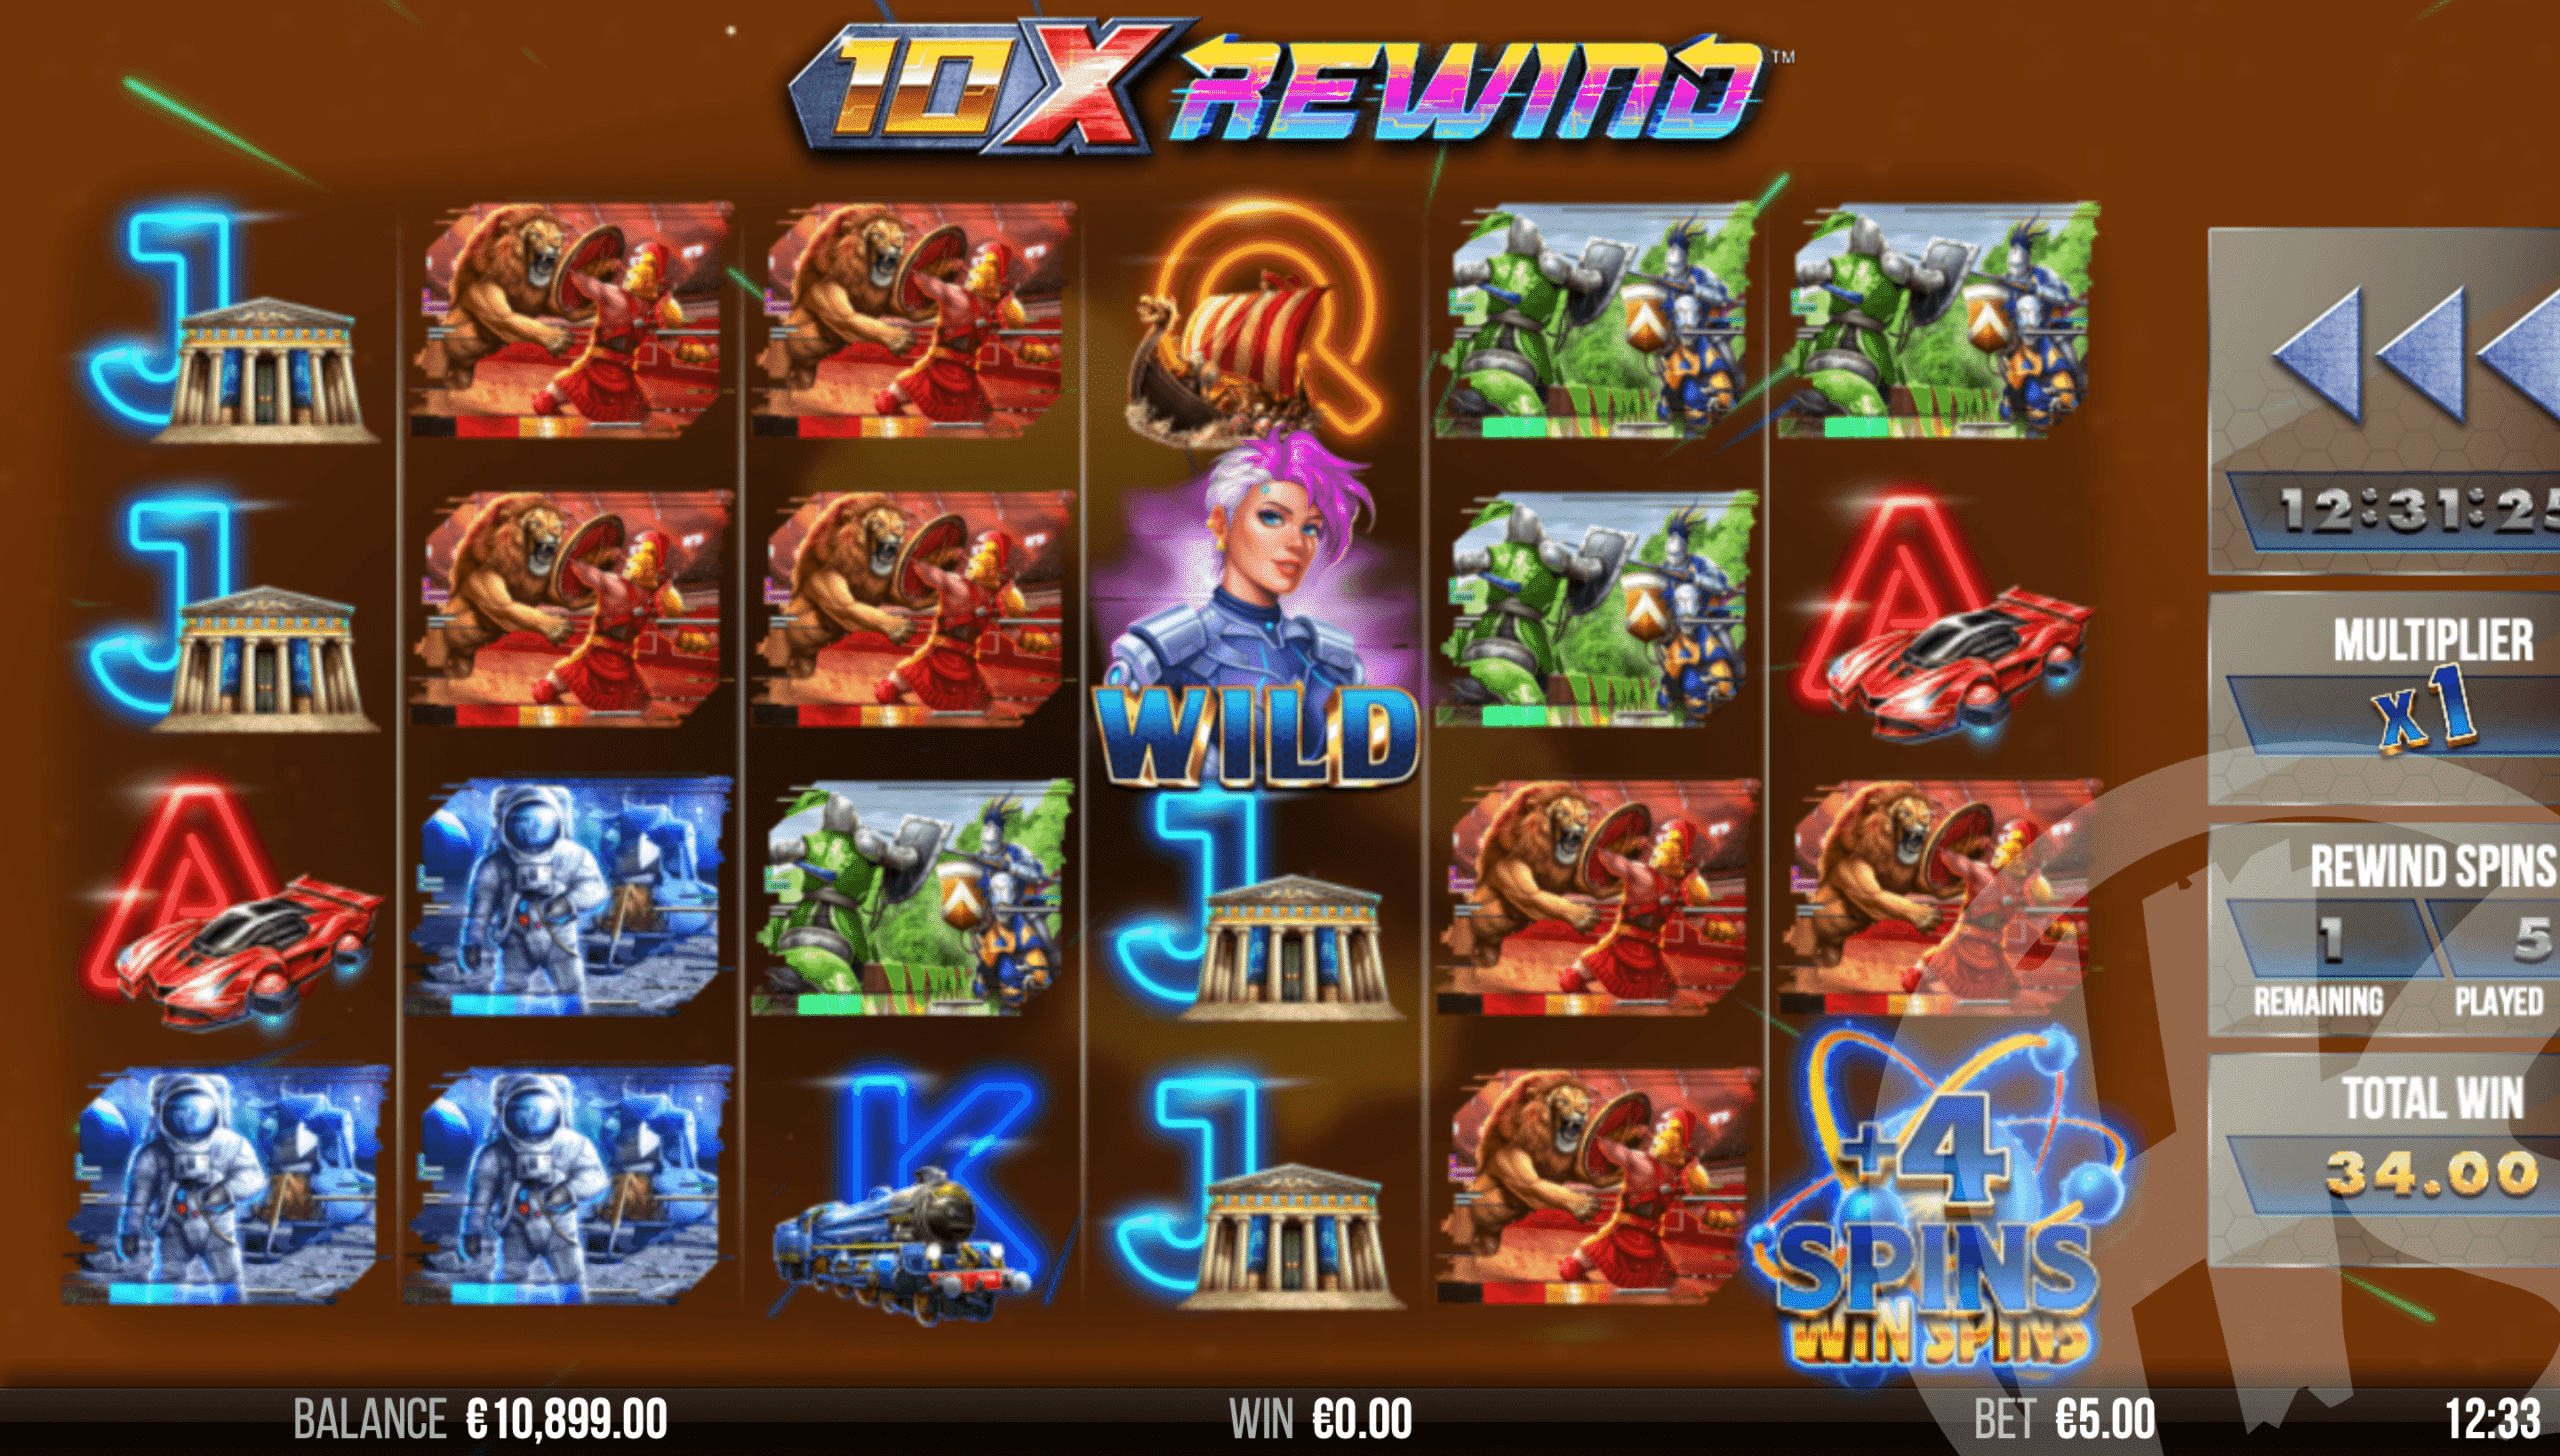 Scatters During Free Spins Awards Additional Spins, Cash Prizes, or Increases the Multiplier